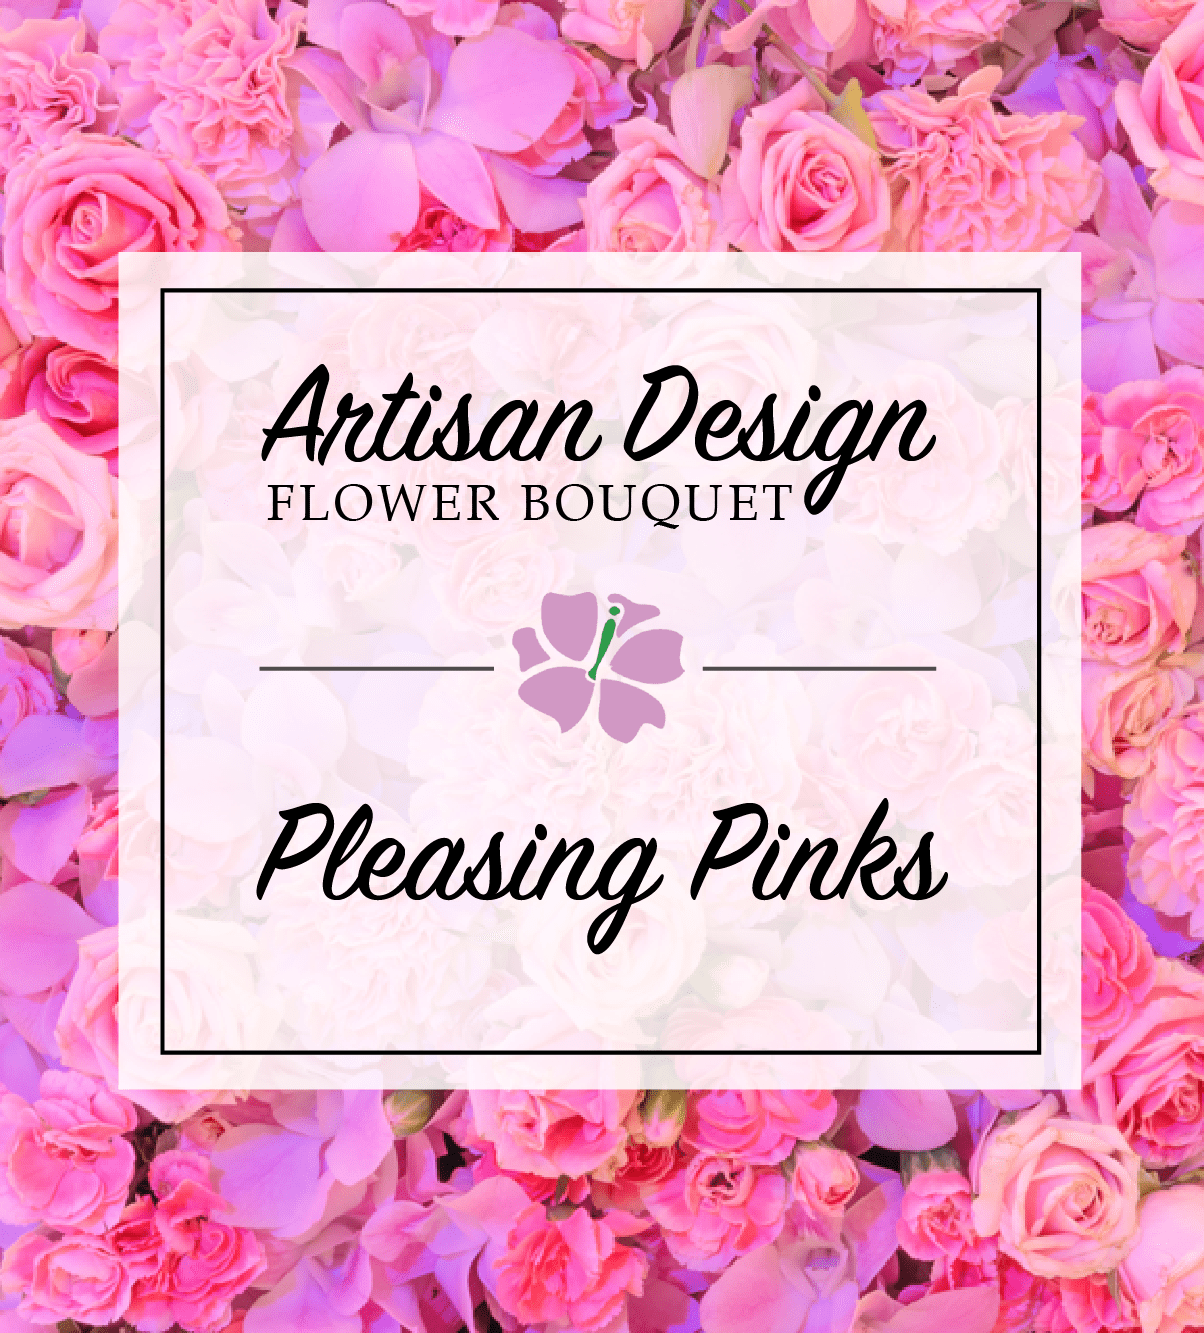 Artist's Design: Pleasing Pinks